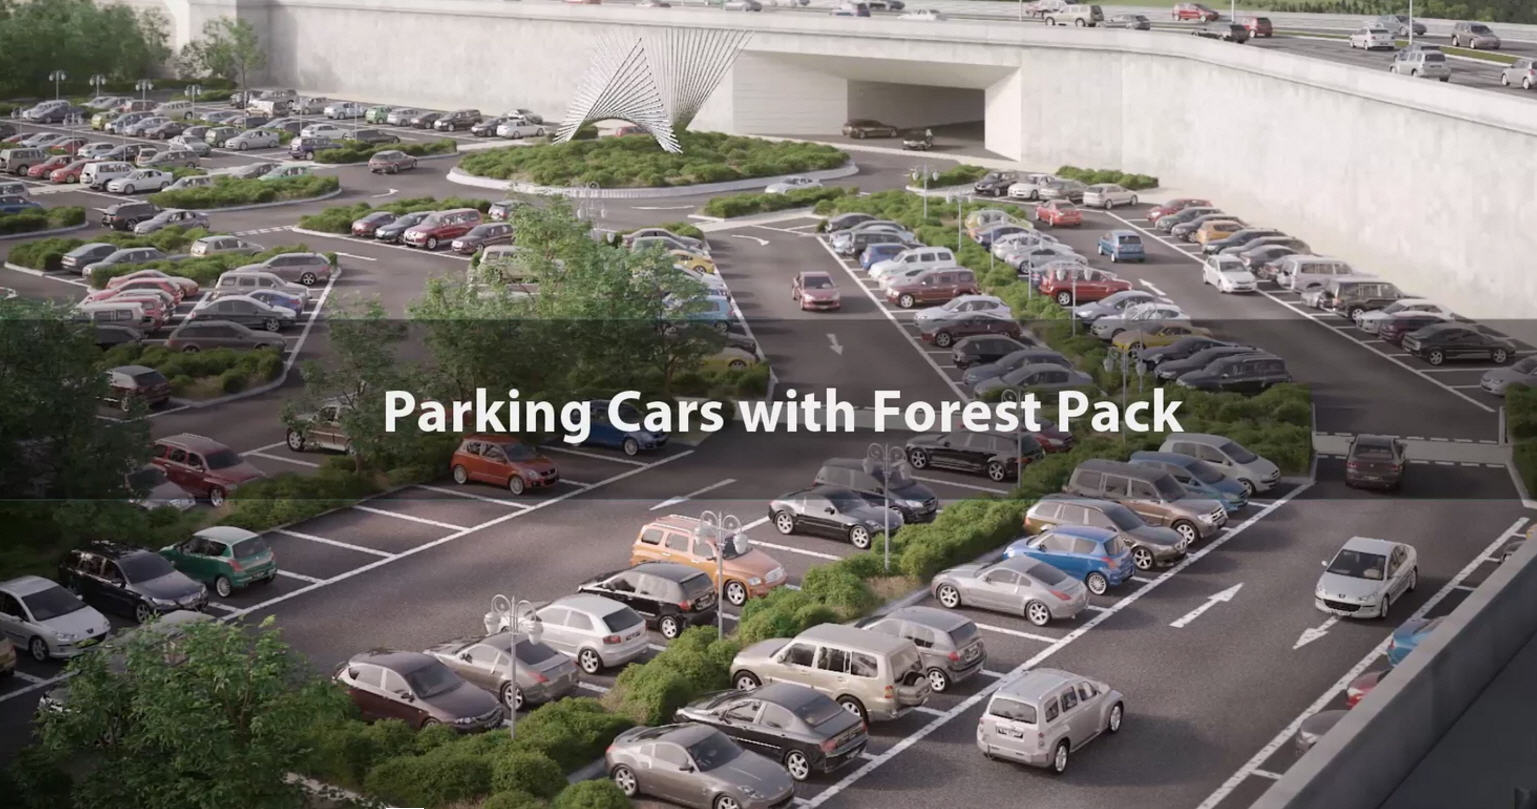 Parking Cars with Forest Pack | CG TUTORIAL